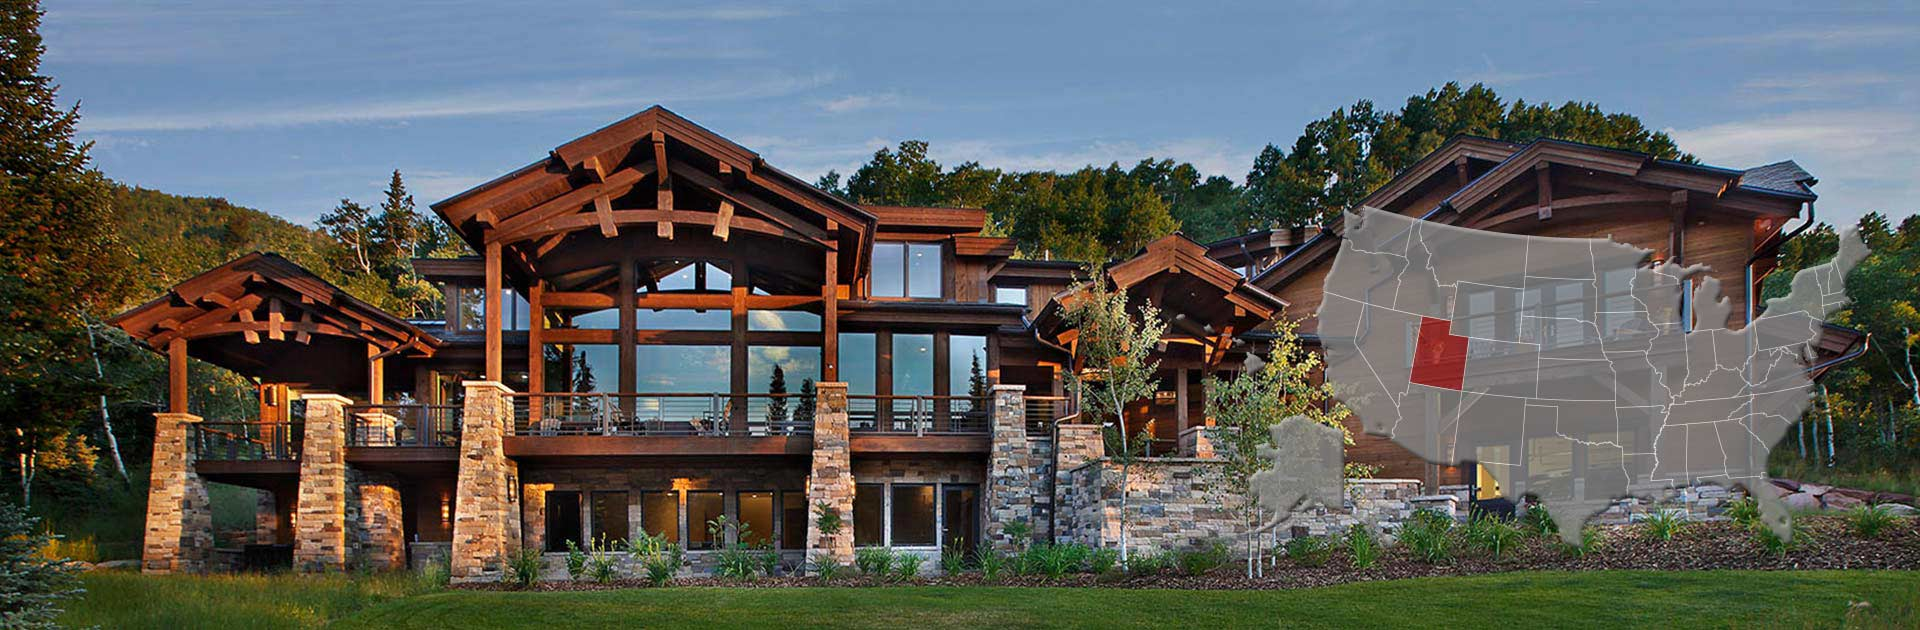 Utah log and timber frame homes by precisioncraft for Timber frame house plans with walkout basement